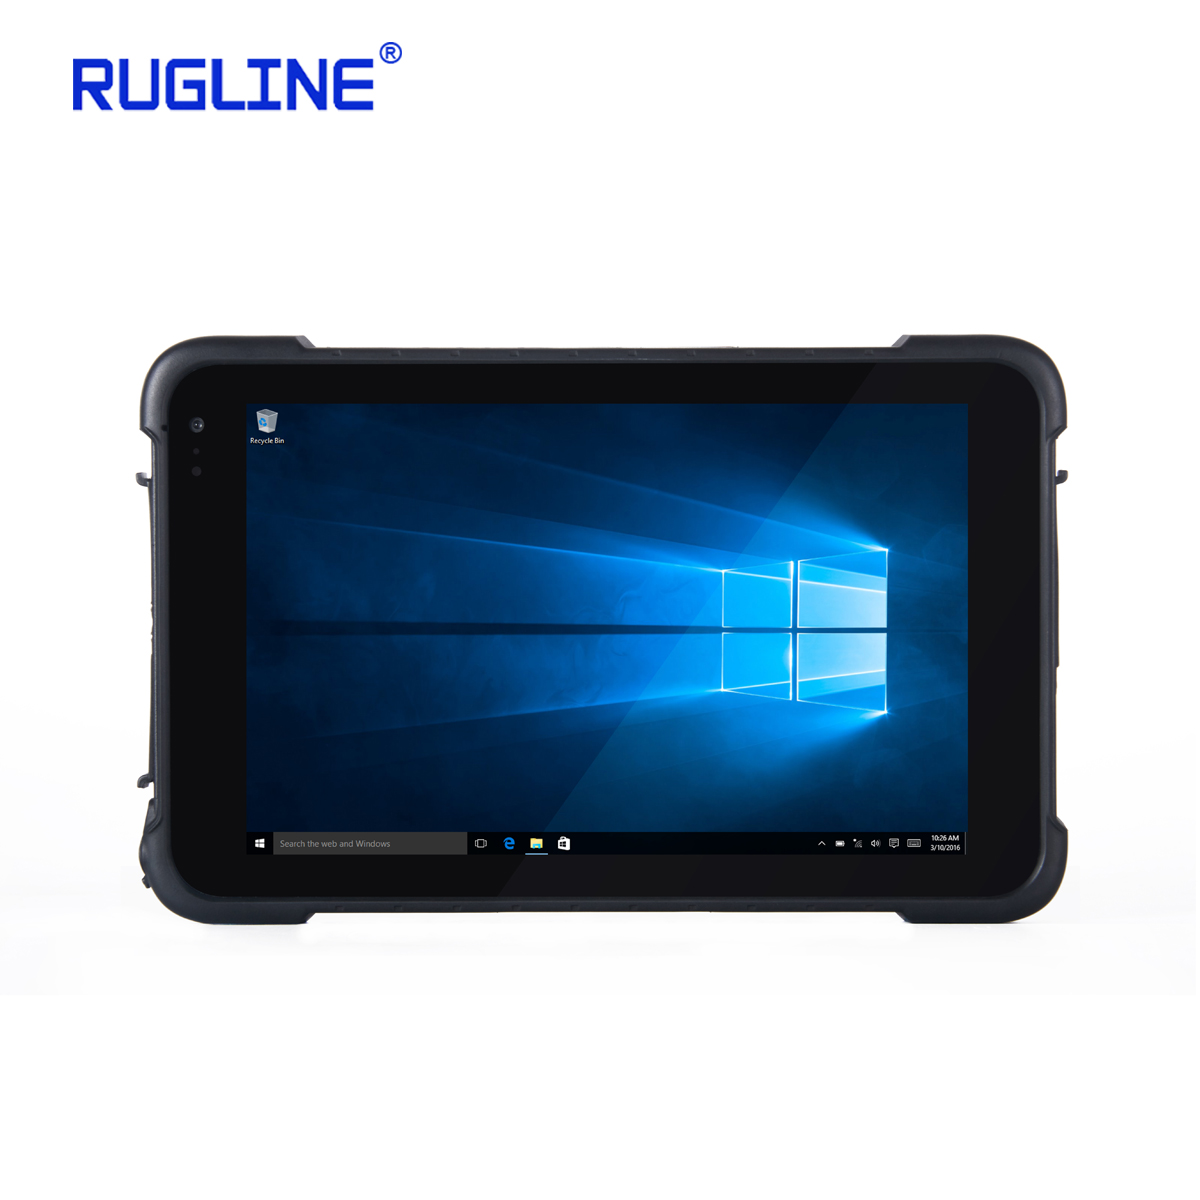 Rugline RT86 Windows 10 Home Outdoor Waterproof IP67 Industrial Barcode Scanner Rugged Tablet with 3G WIFI BT4.0 GPS 32GB